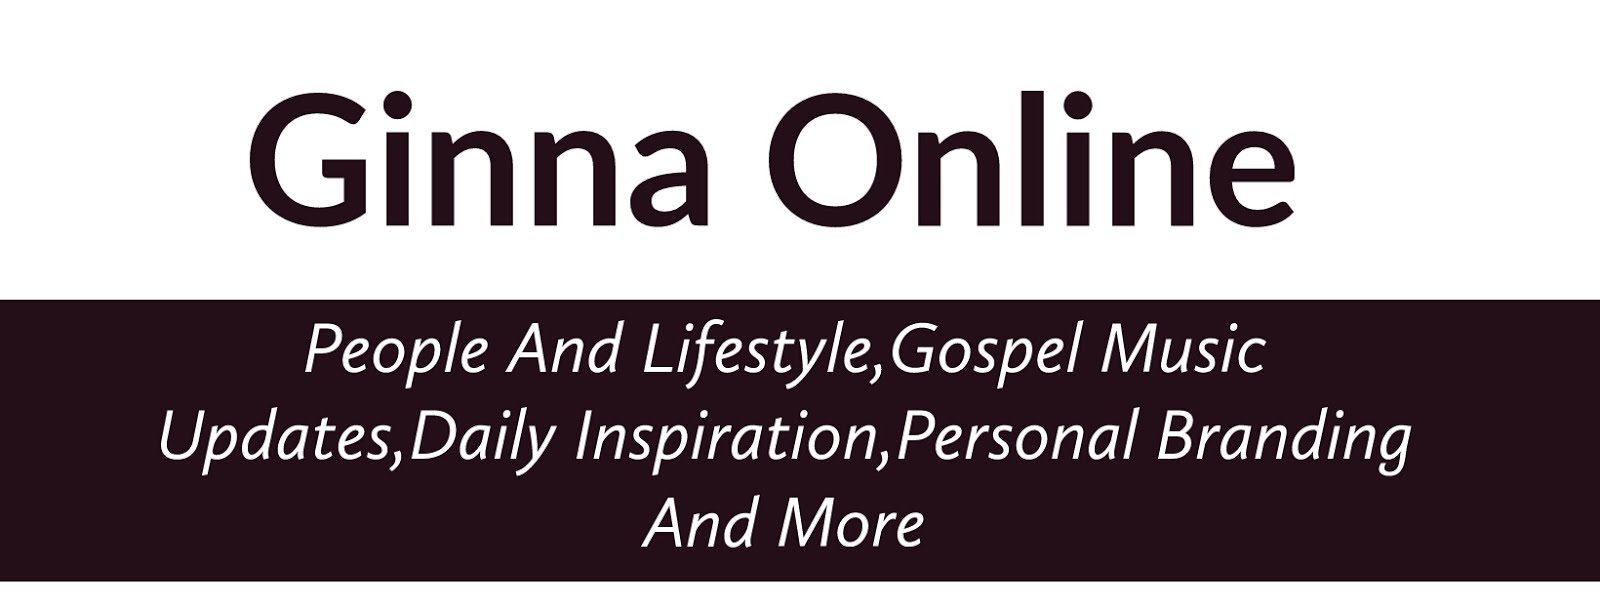 Ginna Online : The best gospel,People and Lifestyle blog in ghana